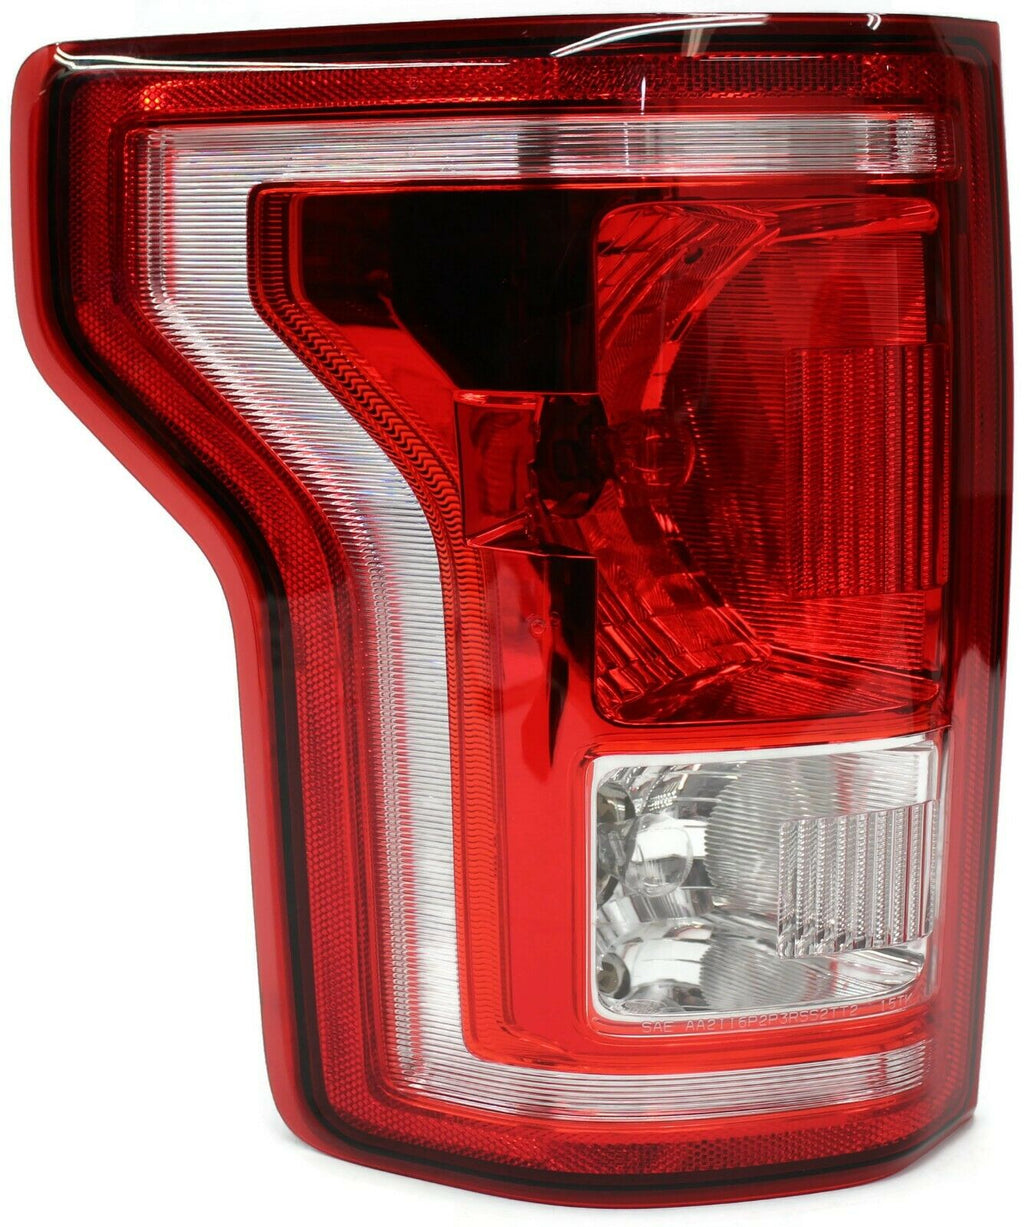 2015-2017 Ford F150 Driver Left Side Rear Tail Light FL34-13B505-A